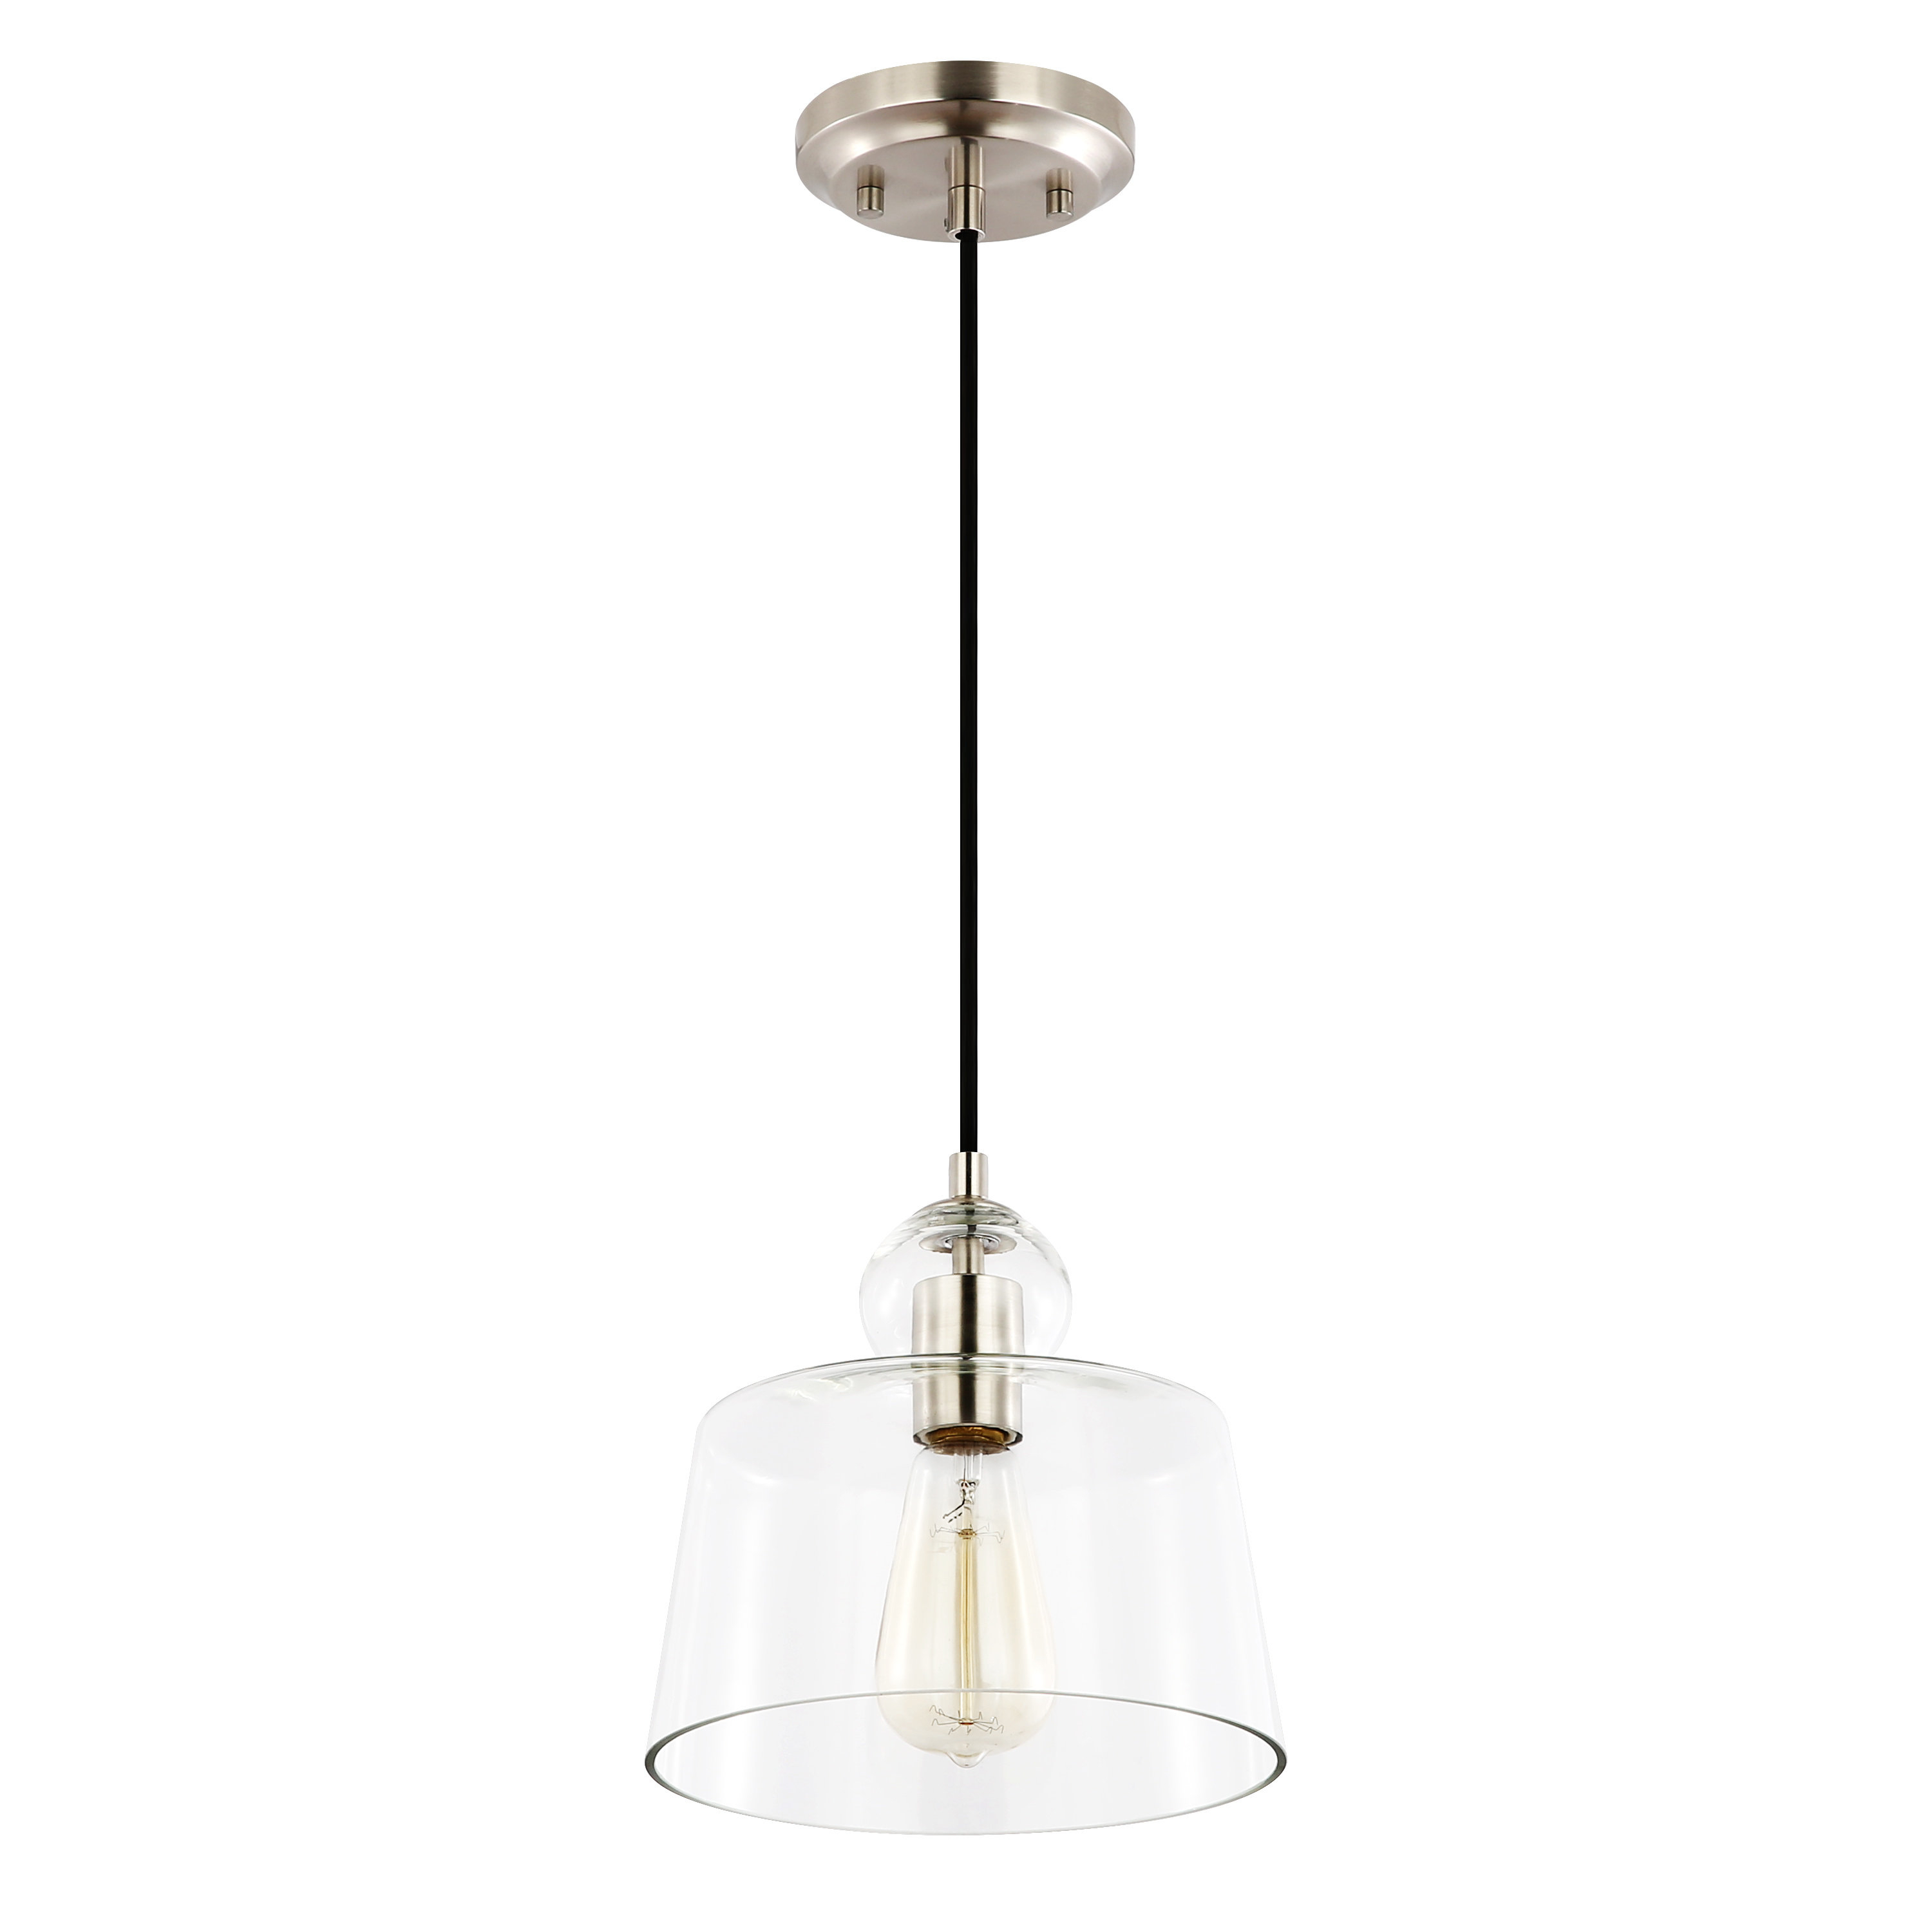 Marcello 1 Light Bell Pendant Within Moyer 1 Light Single Cylinder Pendants (View 9 of 30)